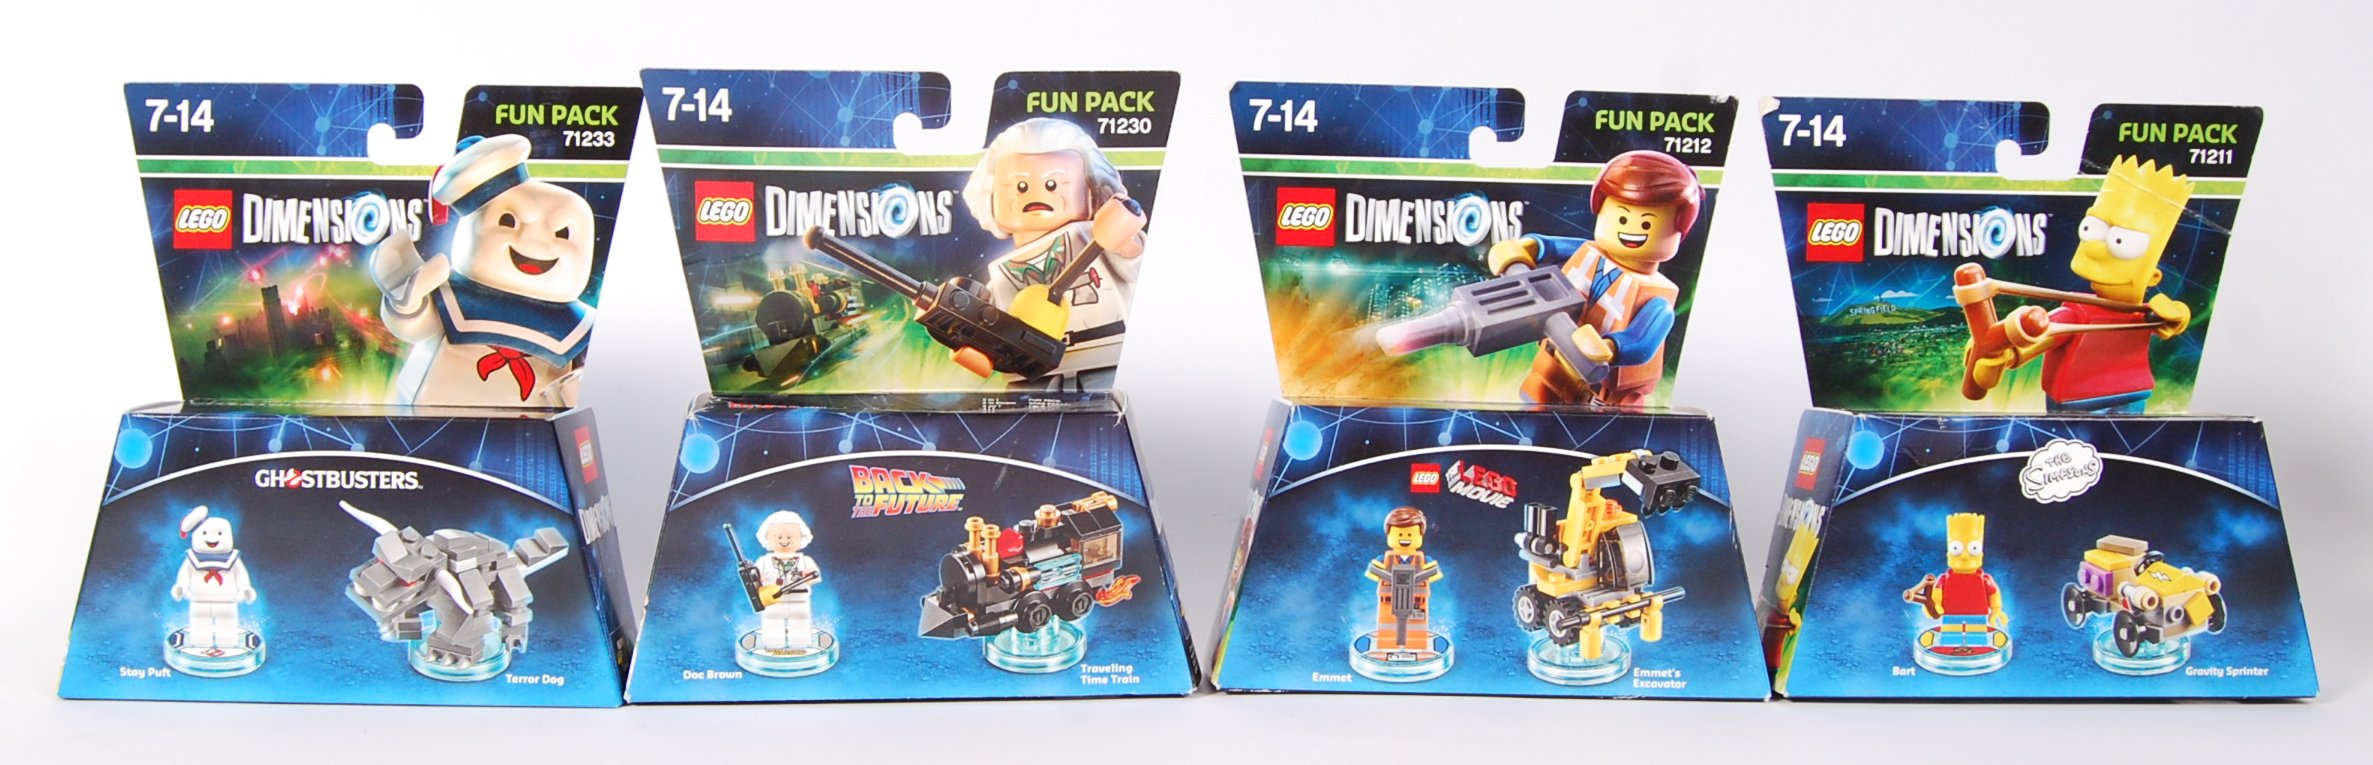 LEGO DIMENSION 71233 , 71230 , 71212 AND 71211 BOX